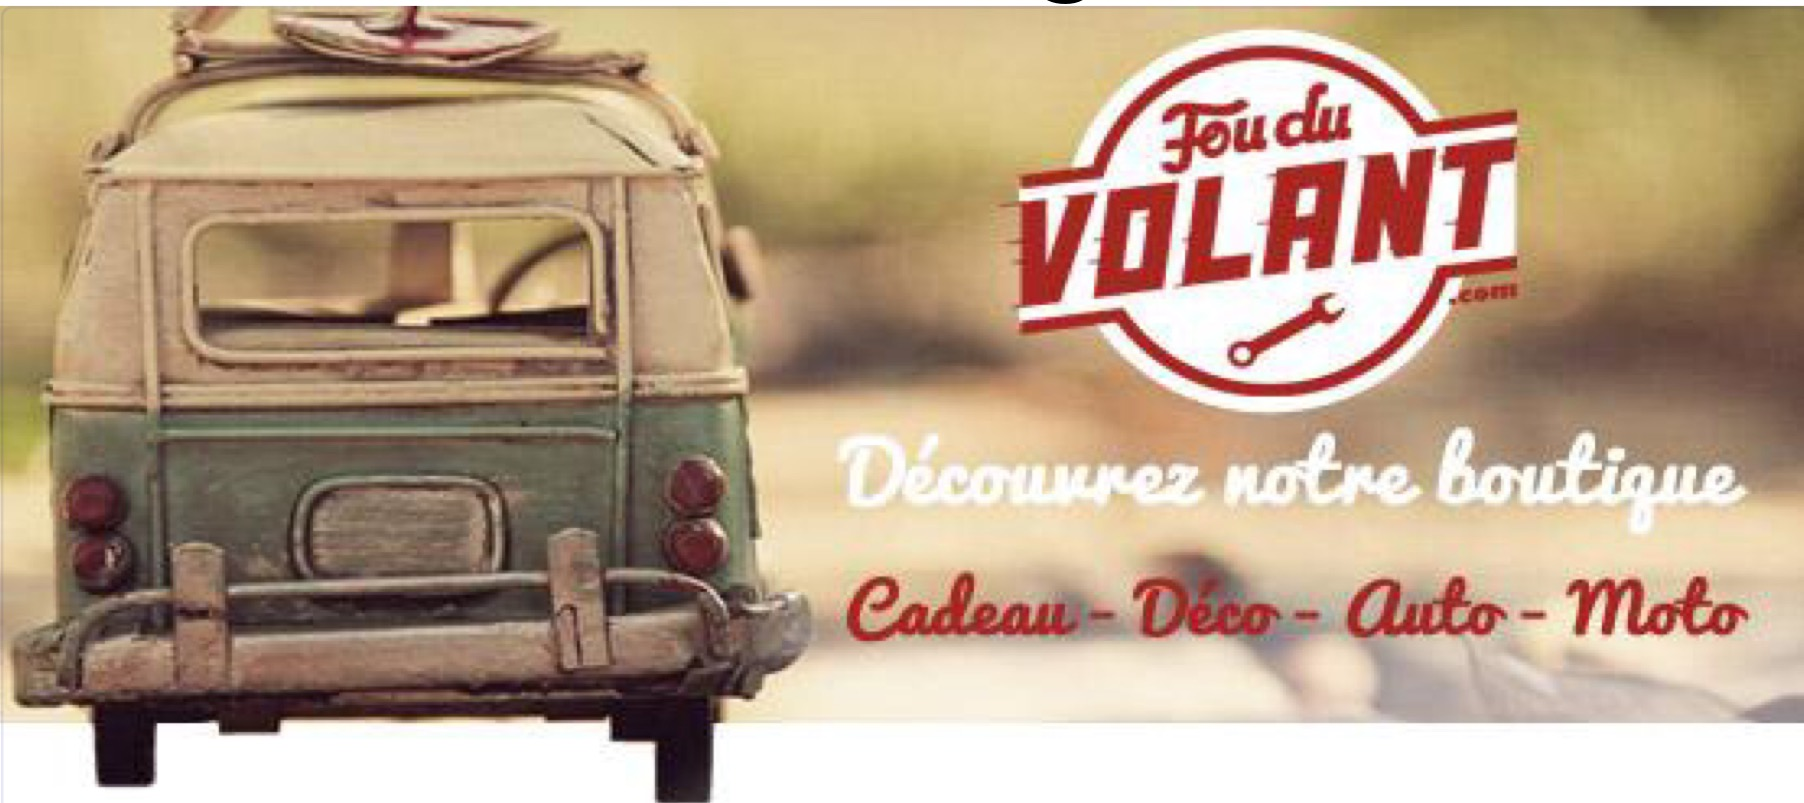 Boutique Fou du Volant